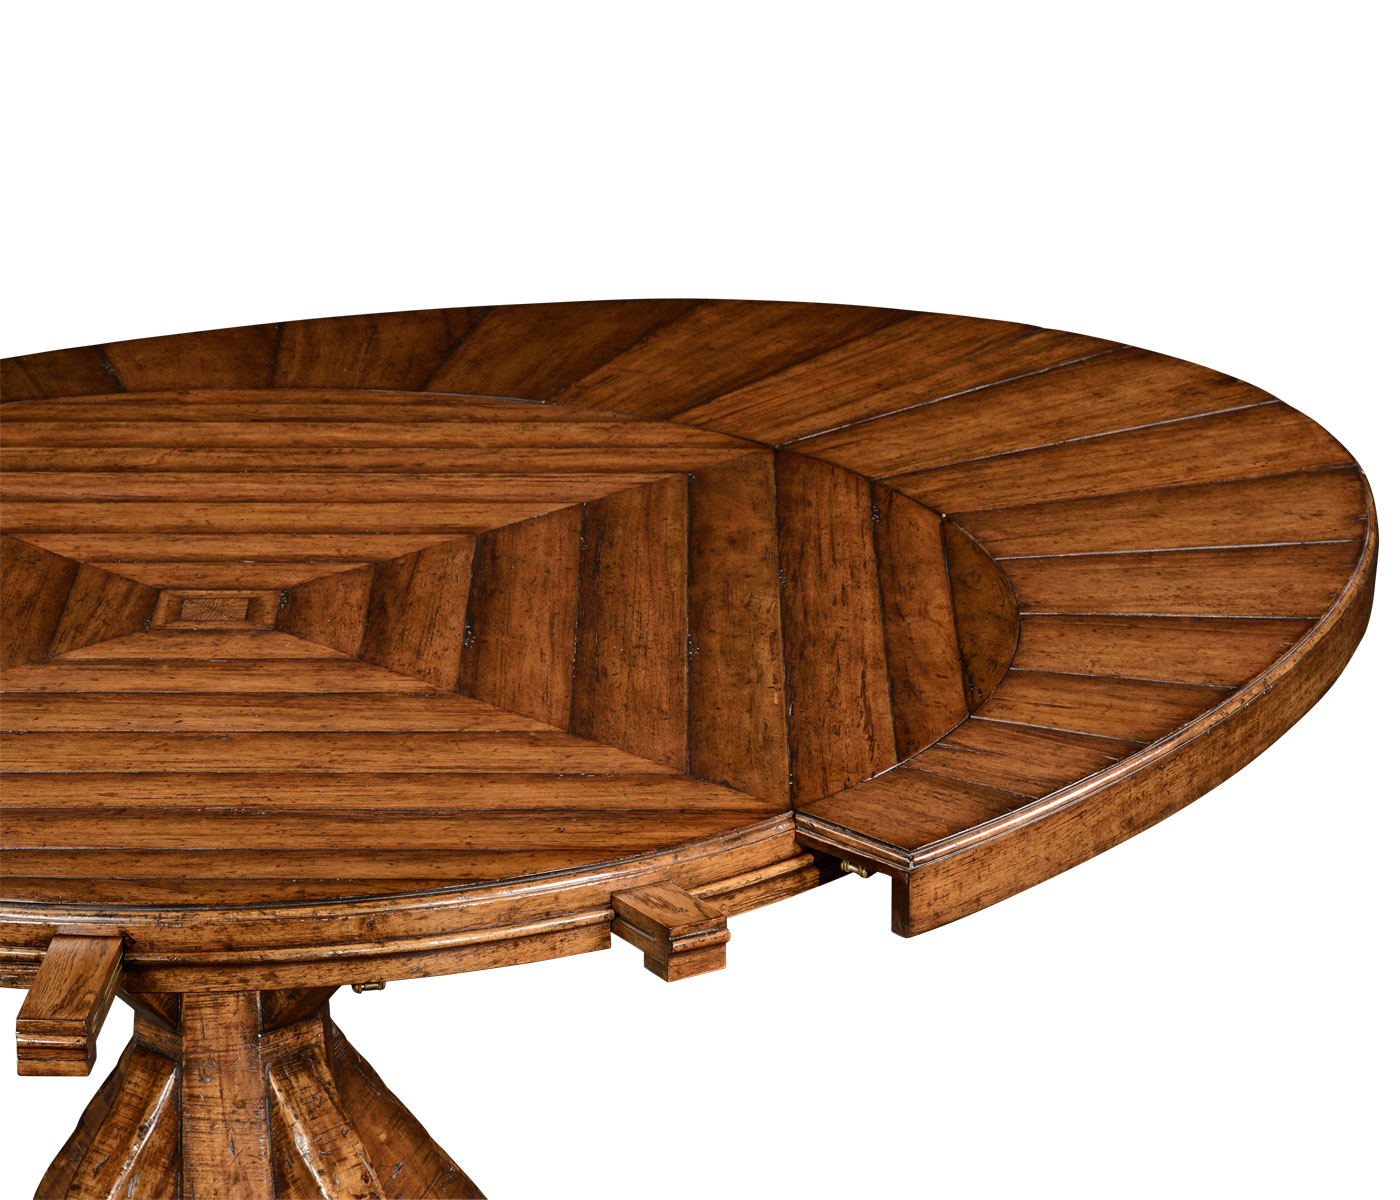 53quot Heavy Distressed Parquet Round To Oval Dining Table : 494849 6 1400x1200 from www.jonathancharlesfurniture.com size 1400 x 1200 jpeg 276kB